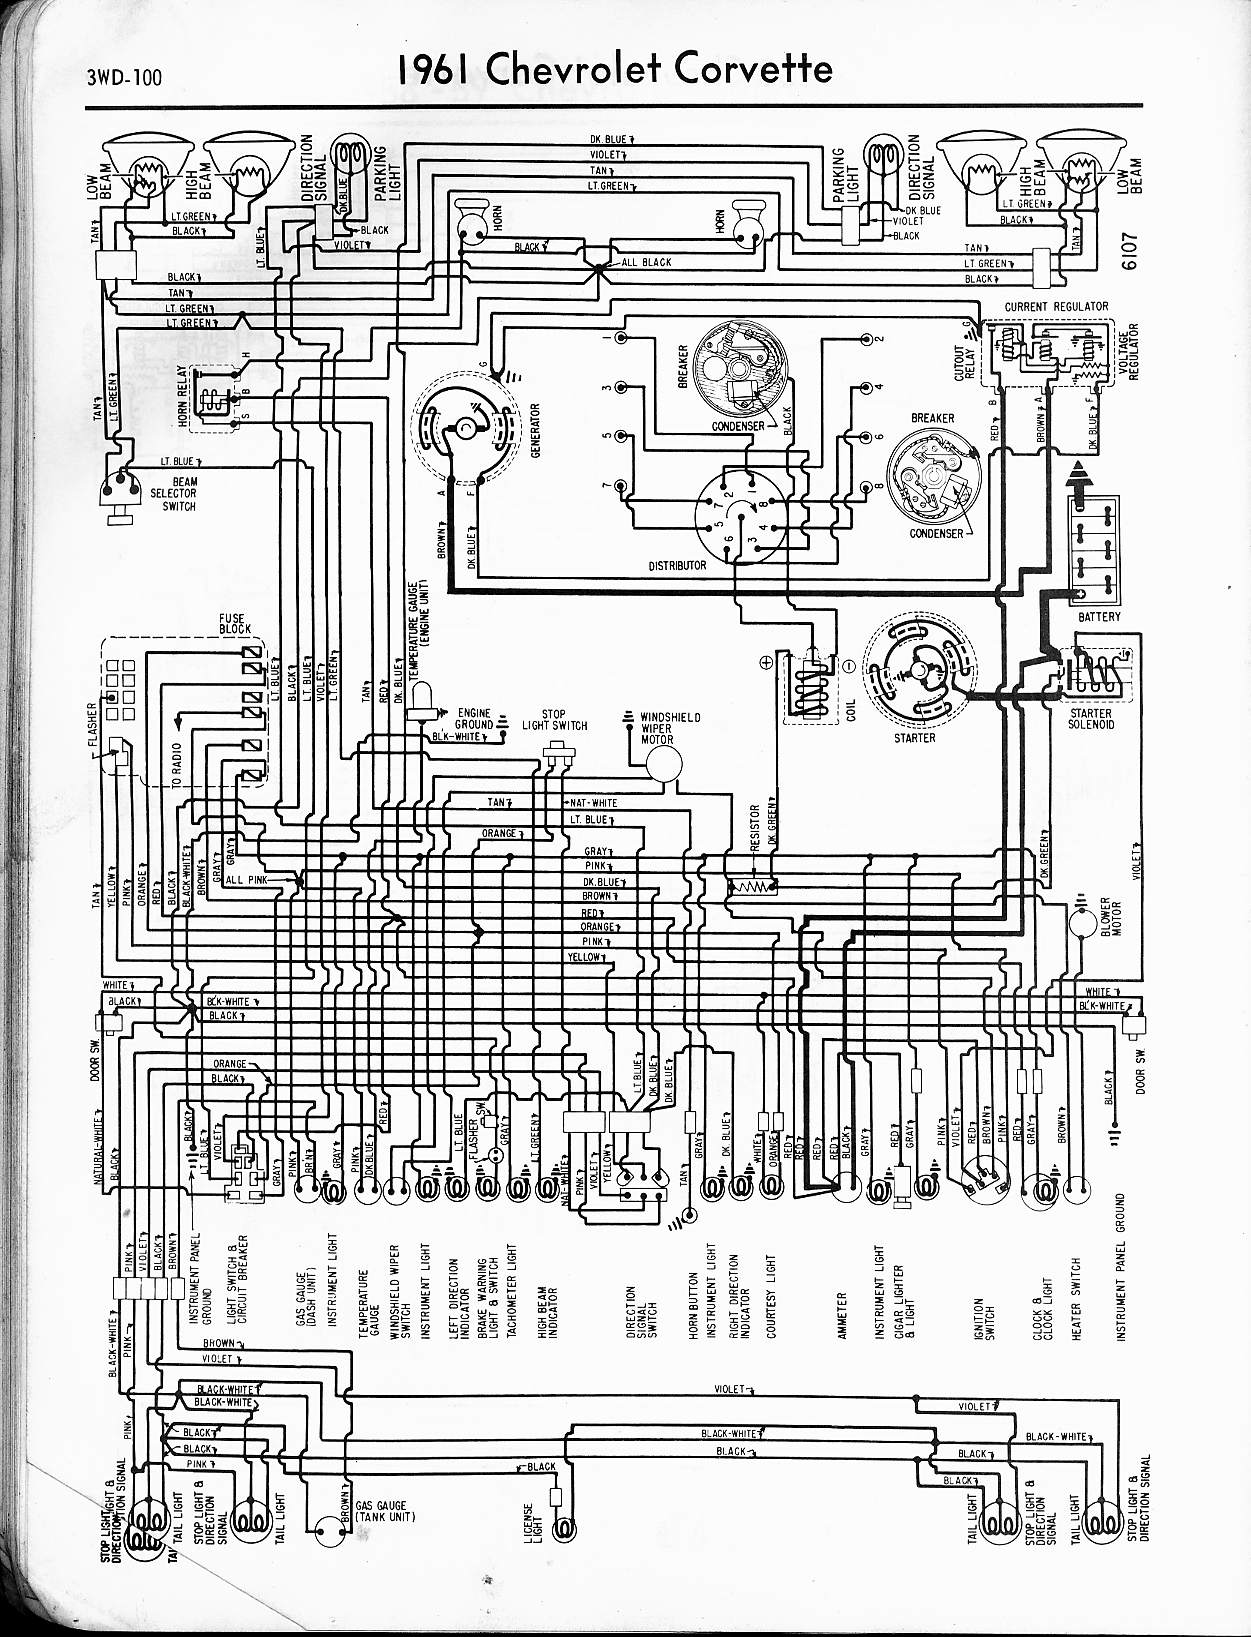 MWireChev61_3WD 100 57 65 chevy wiring diagrams corvette wiring diagram at gsmportal.co